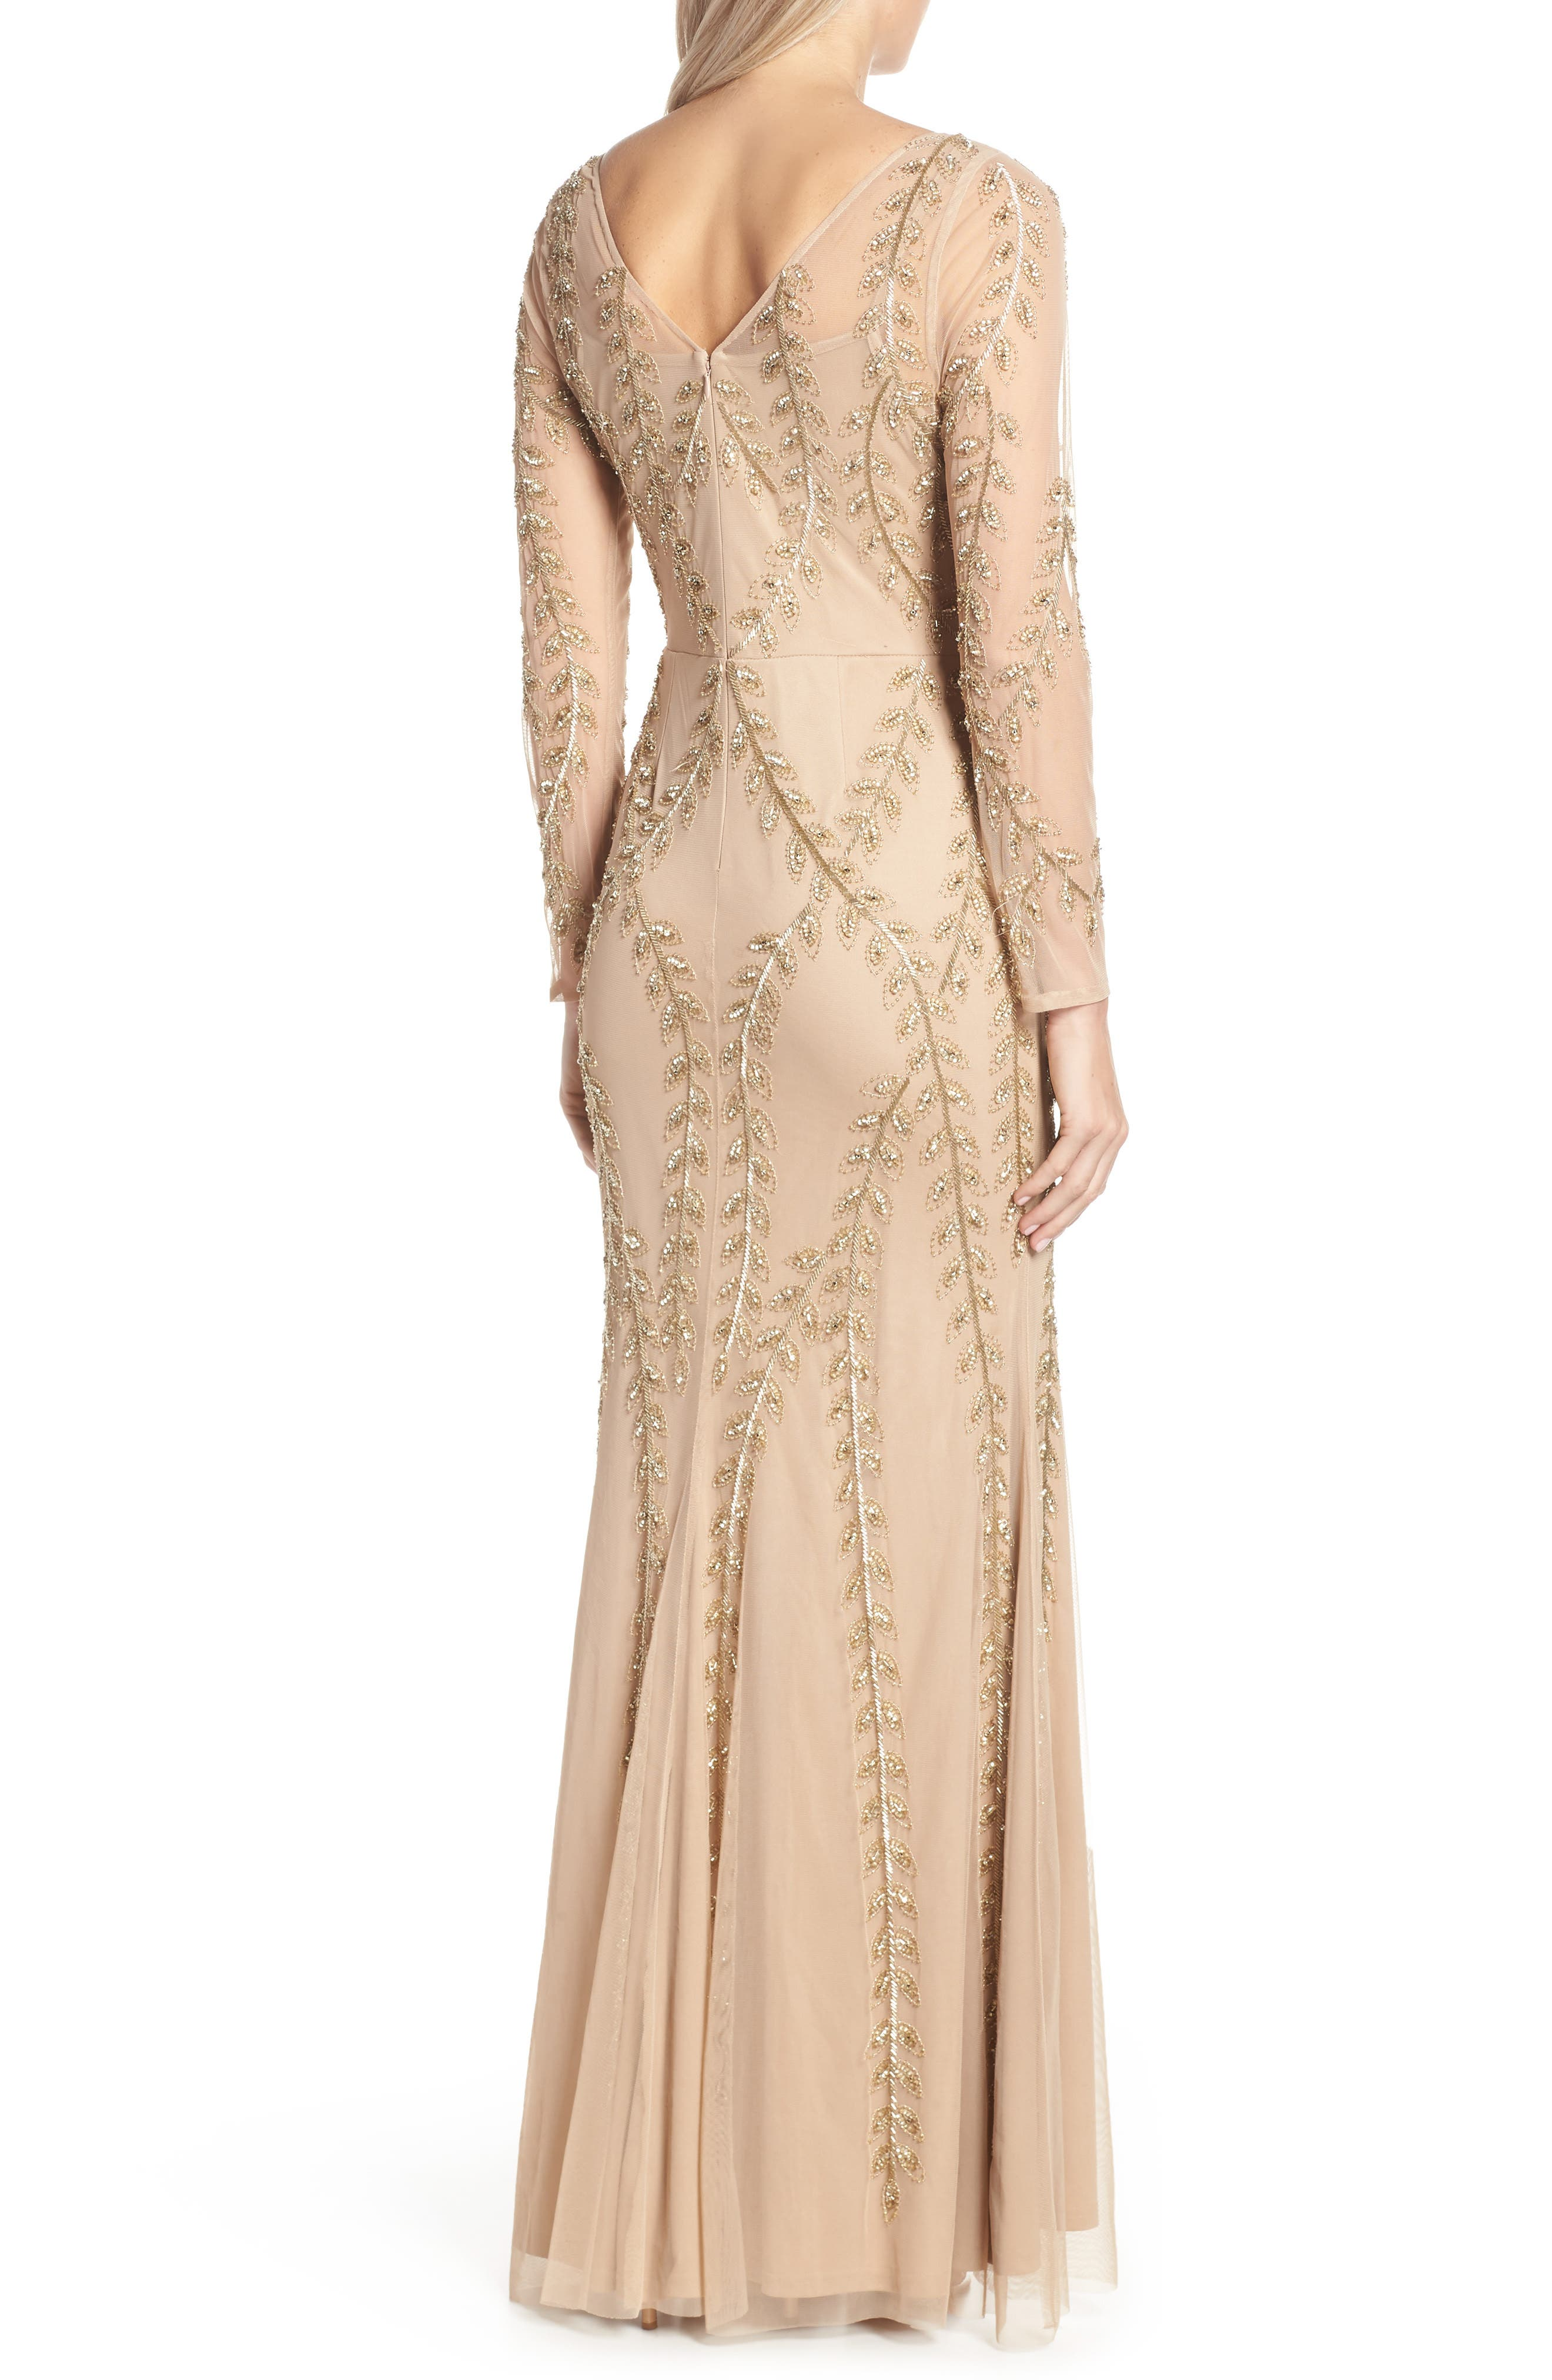 ADRIANNA PAPELL,                             Fern Beaded Gown,                             Alternate thumbnail 2, color,                             CHAMPAGNE/ GOLD